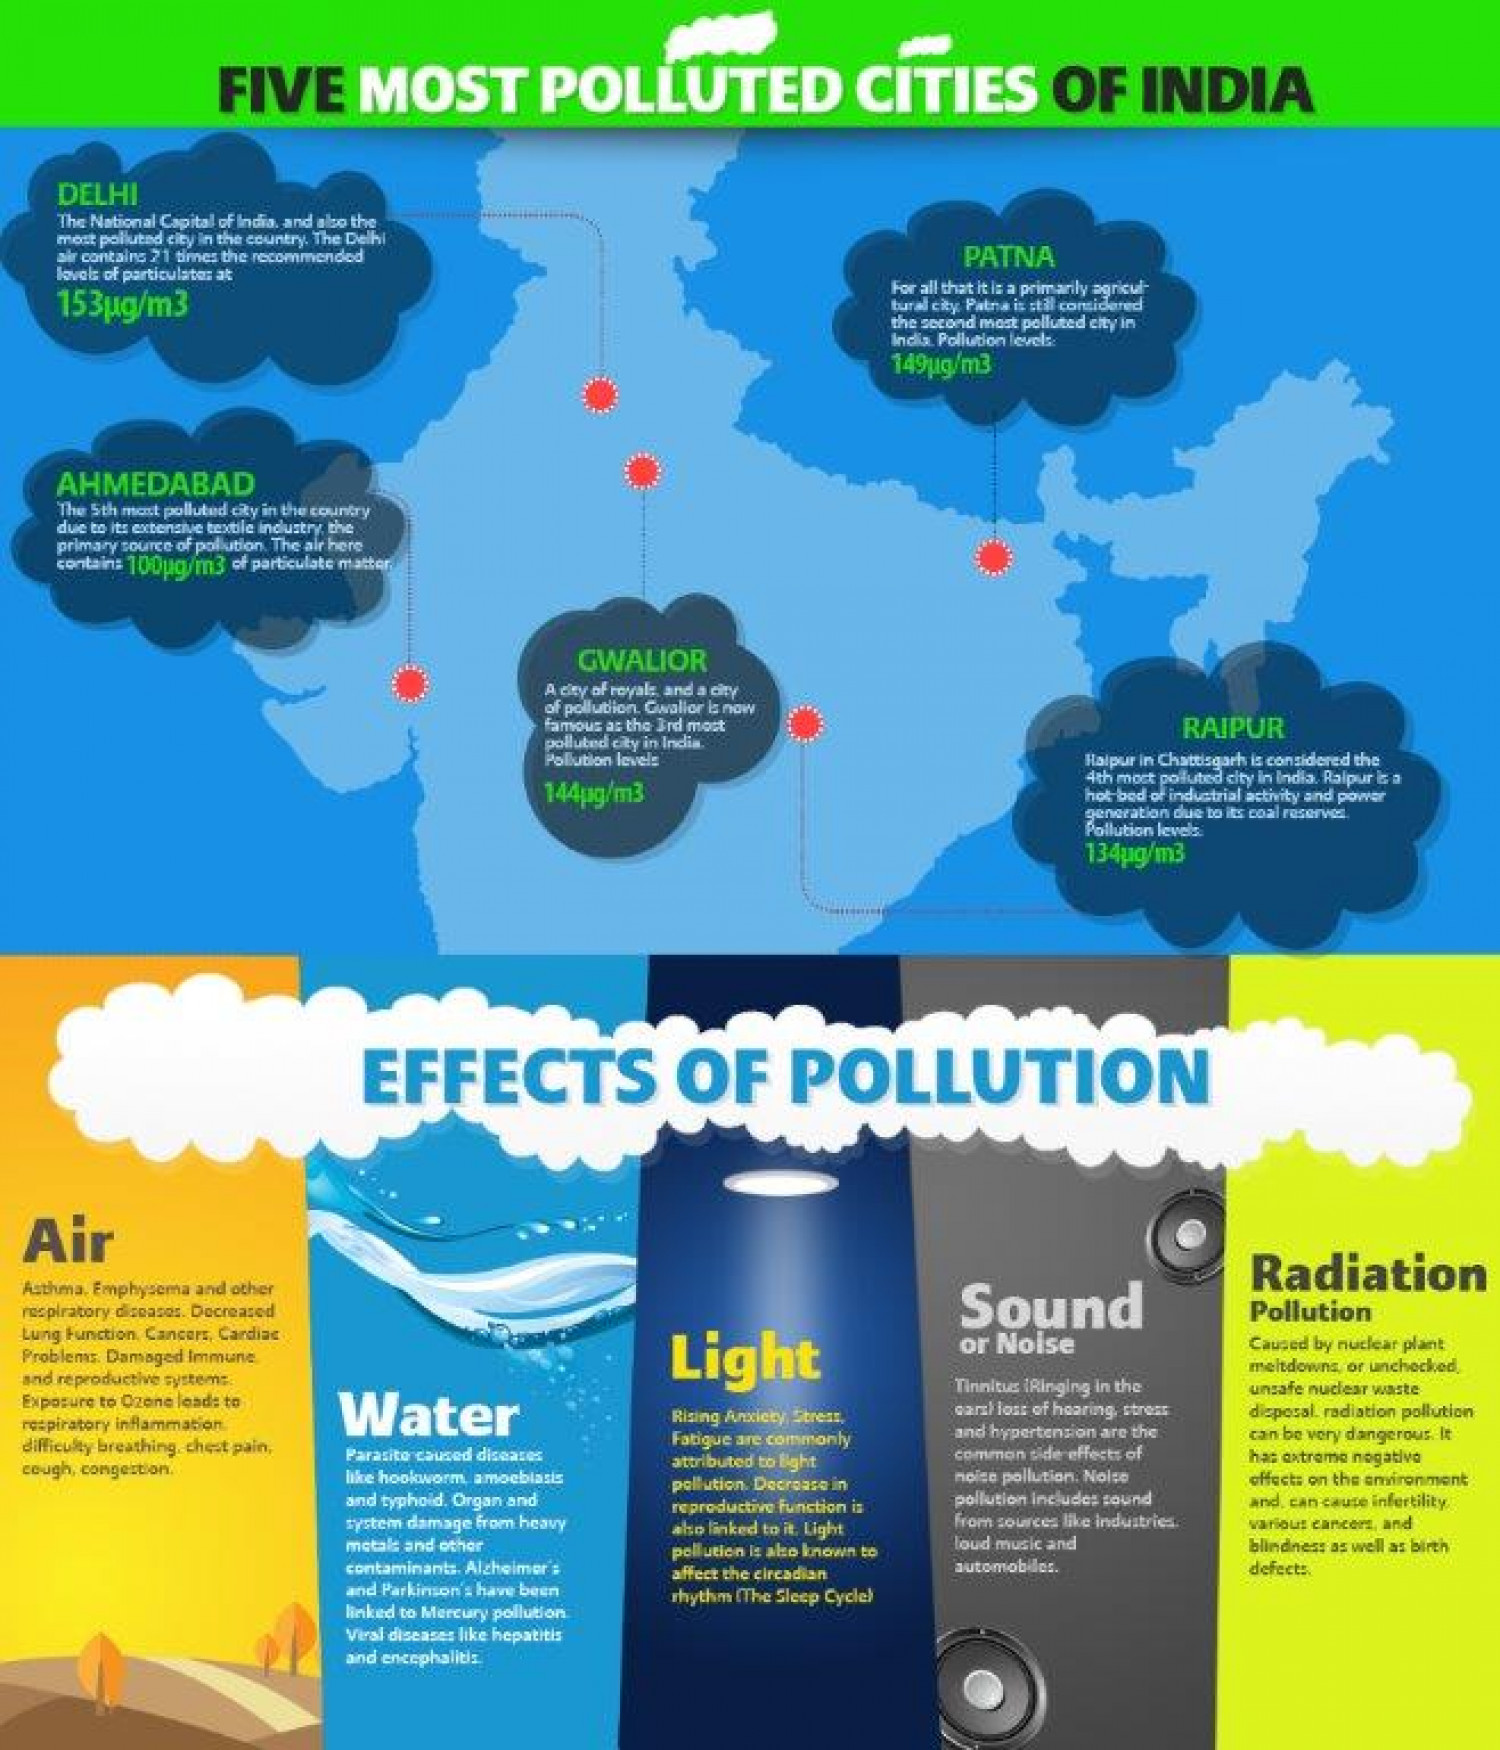 Effects of Pollution Rising All over India | Visual.ly